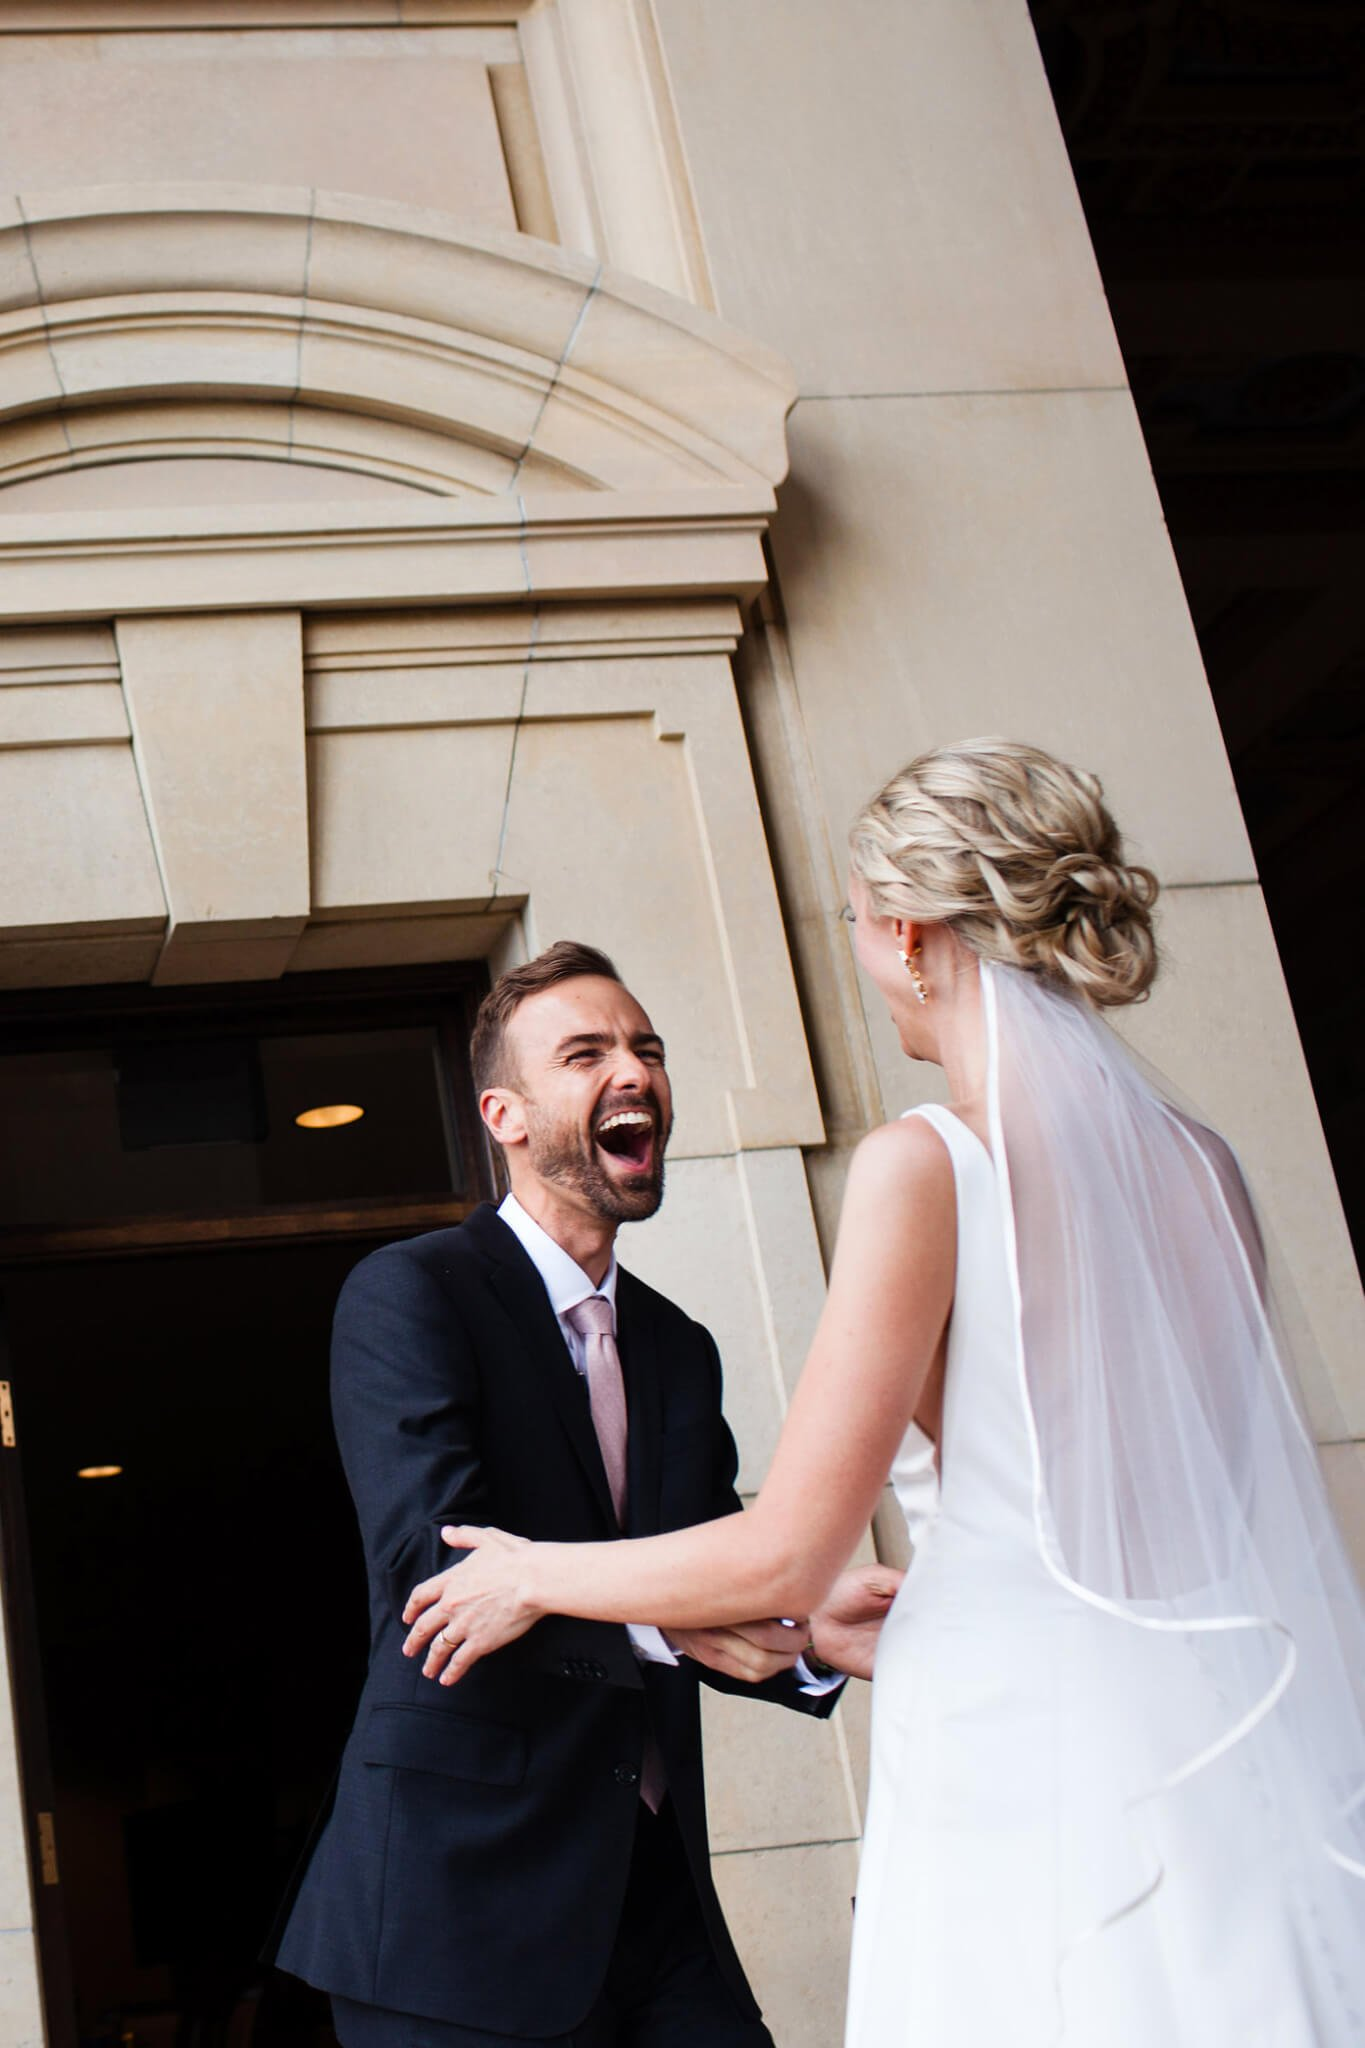 32 Wedding Day Tips From Married People